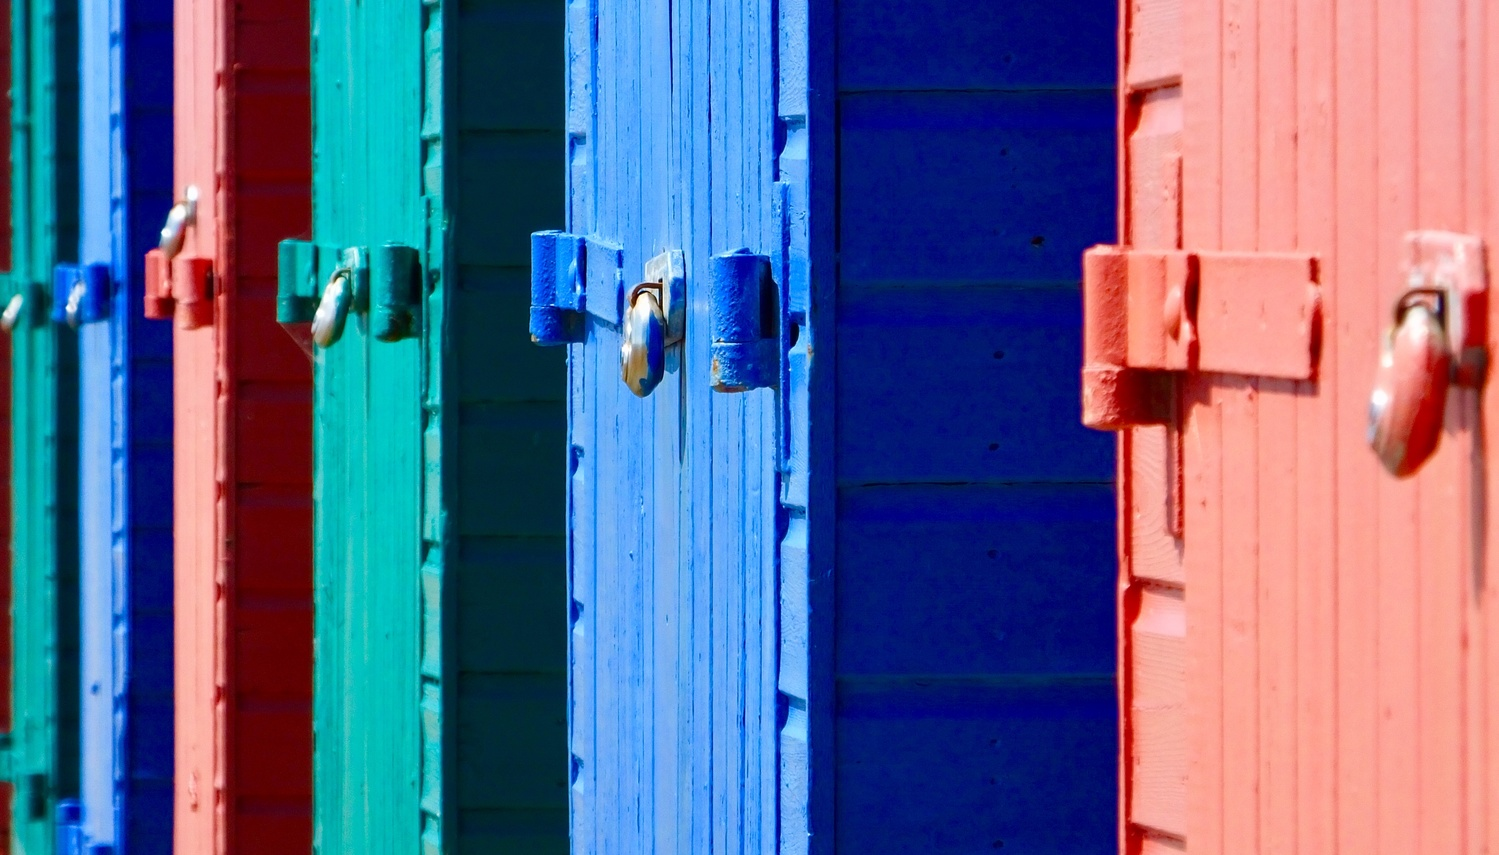 Beach huts 02 by William Hunt